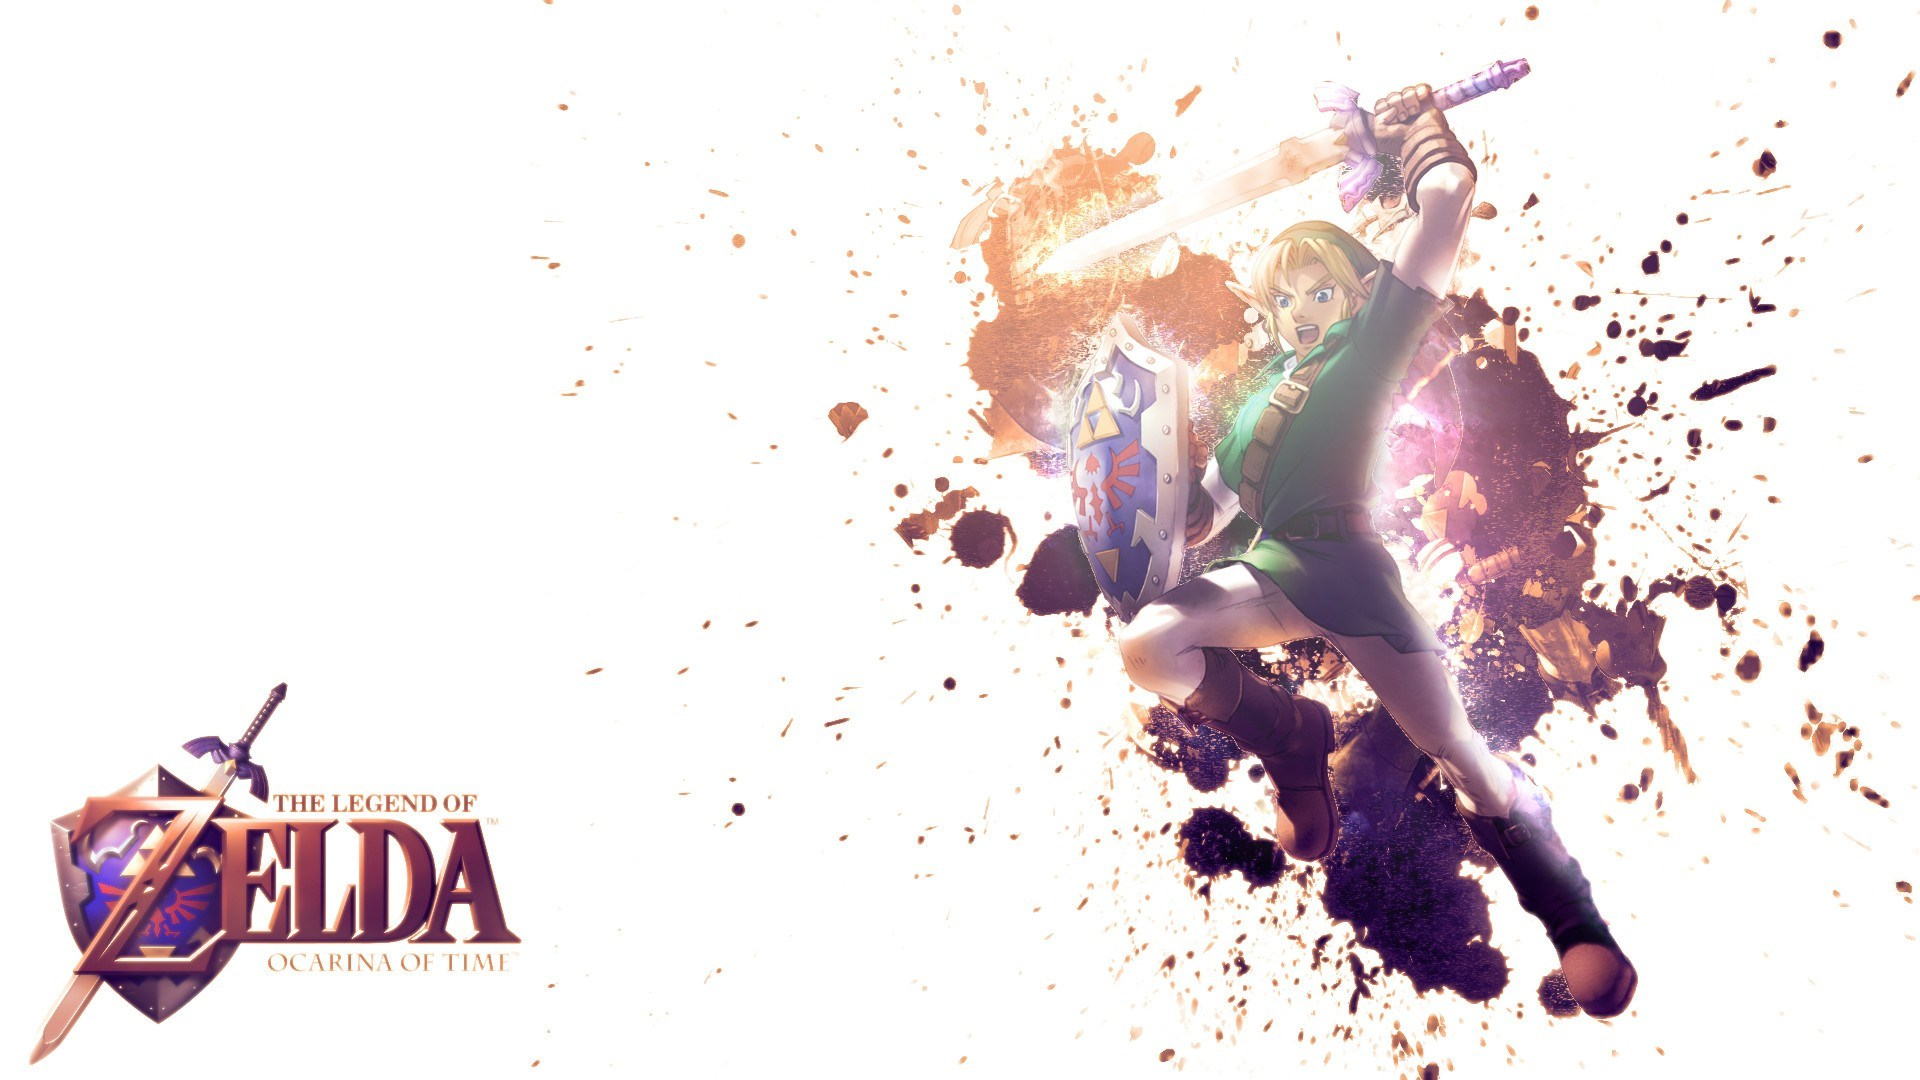 1920x1080-free-desktop-backgrounds-for-the-legend-of-zelda-ocarina-of-time-wallpaper-wp380779